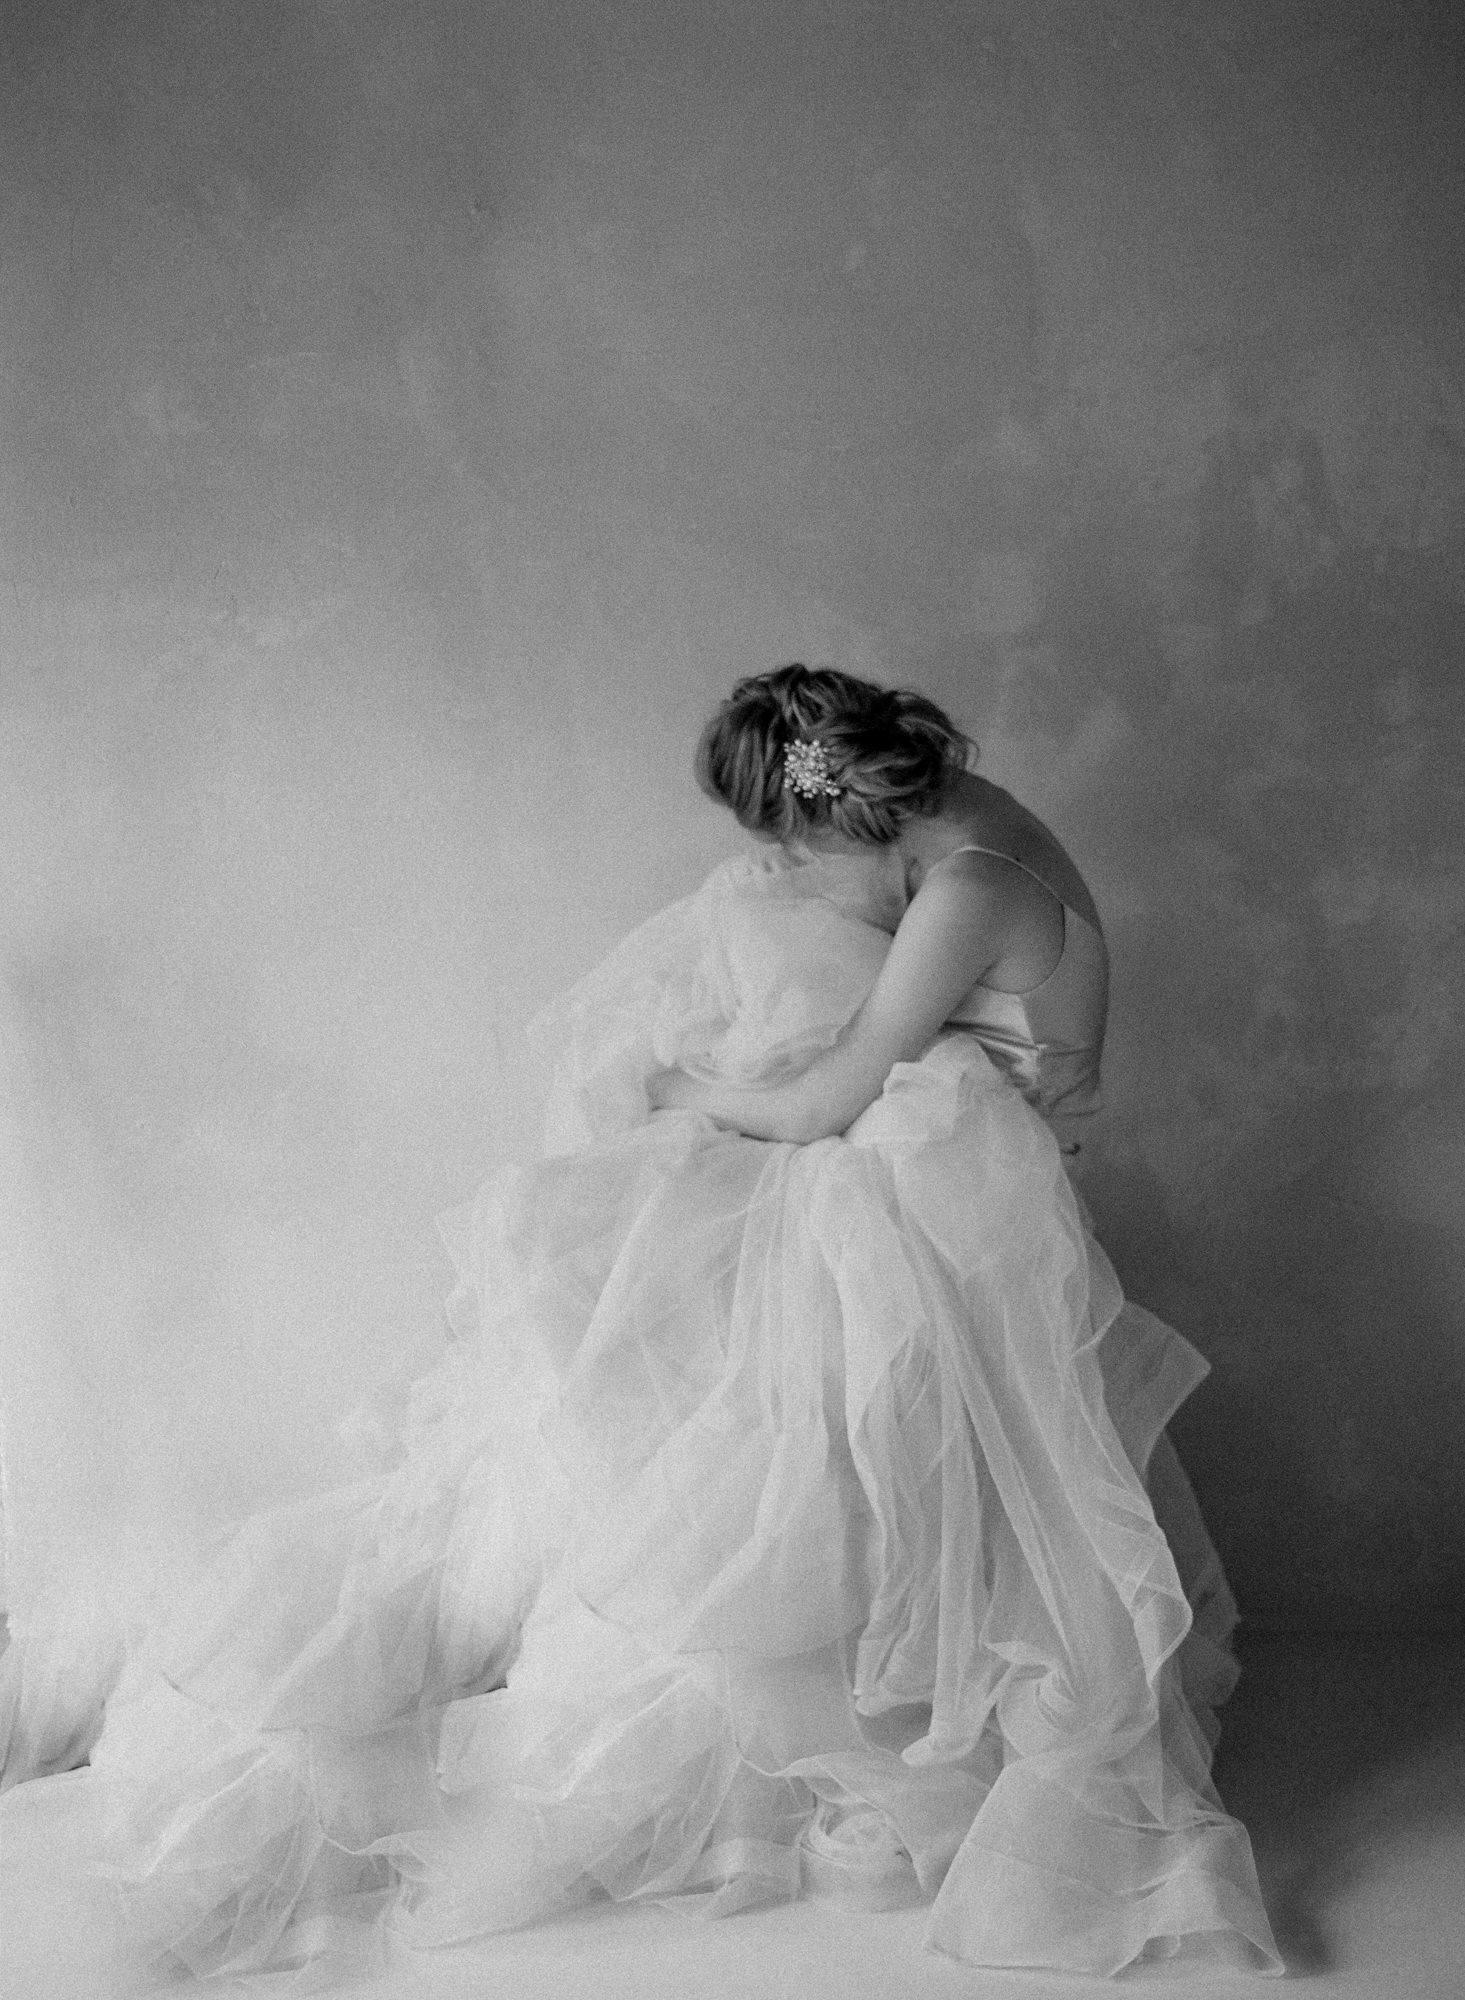 Etheral portrait of bride in tulle wedding skirt Jen Huang Los Angeles wedding photographer